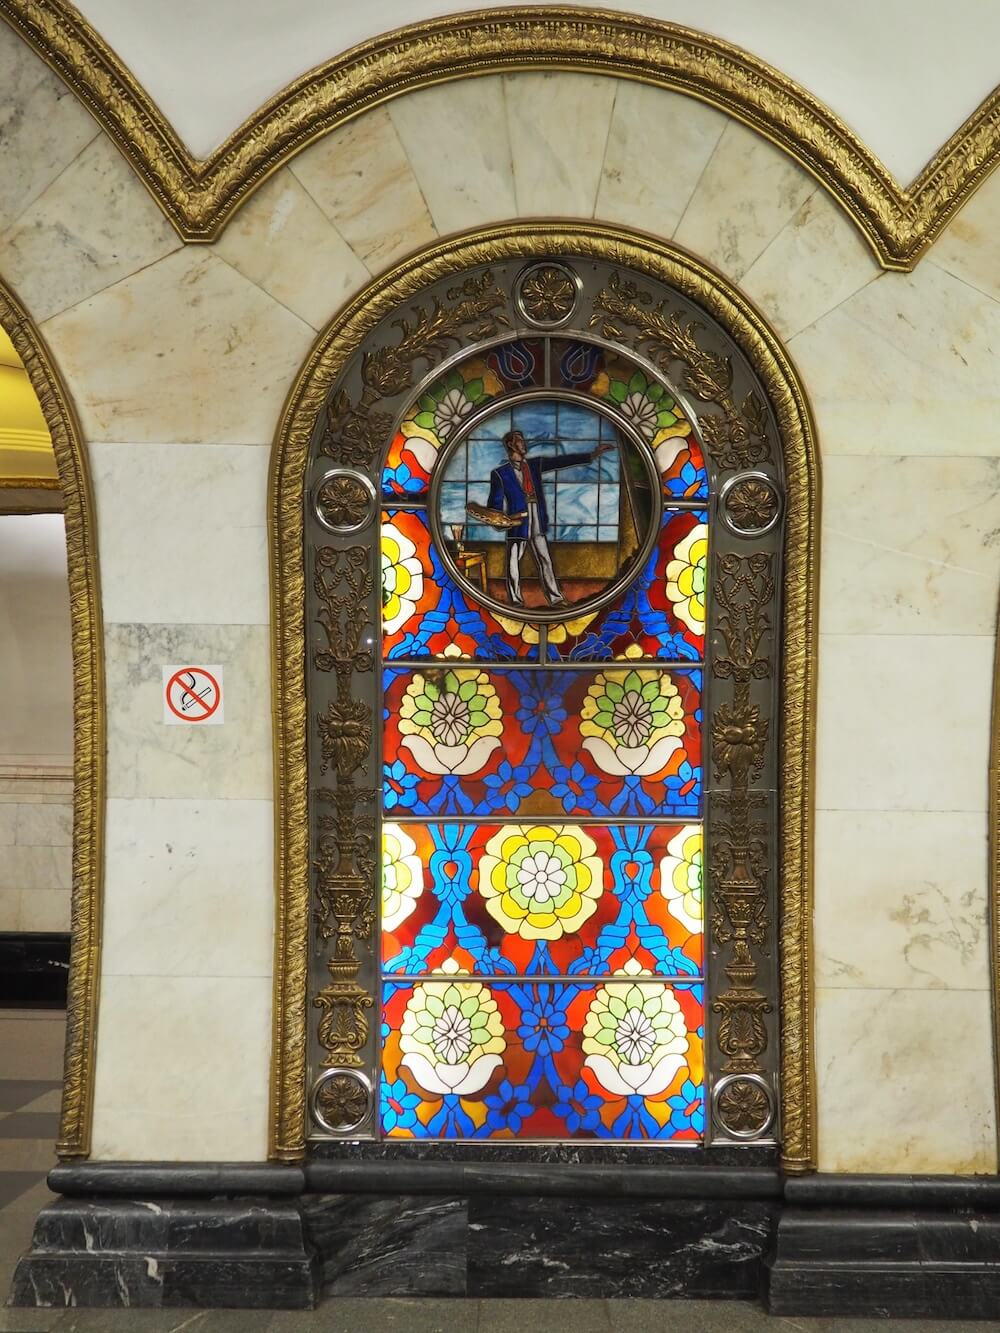 Moscow Metro wall